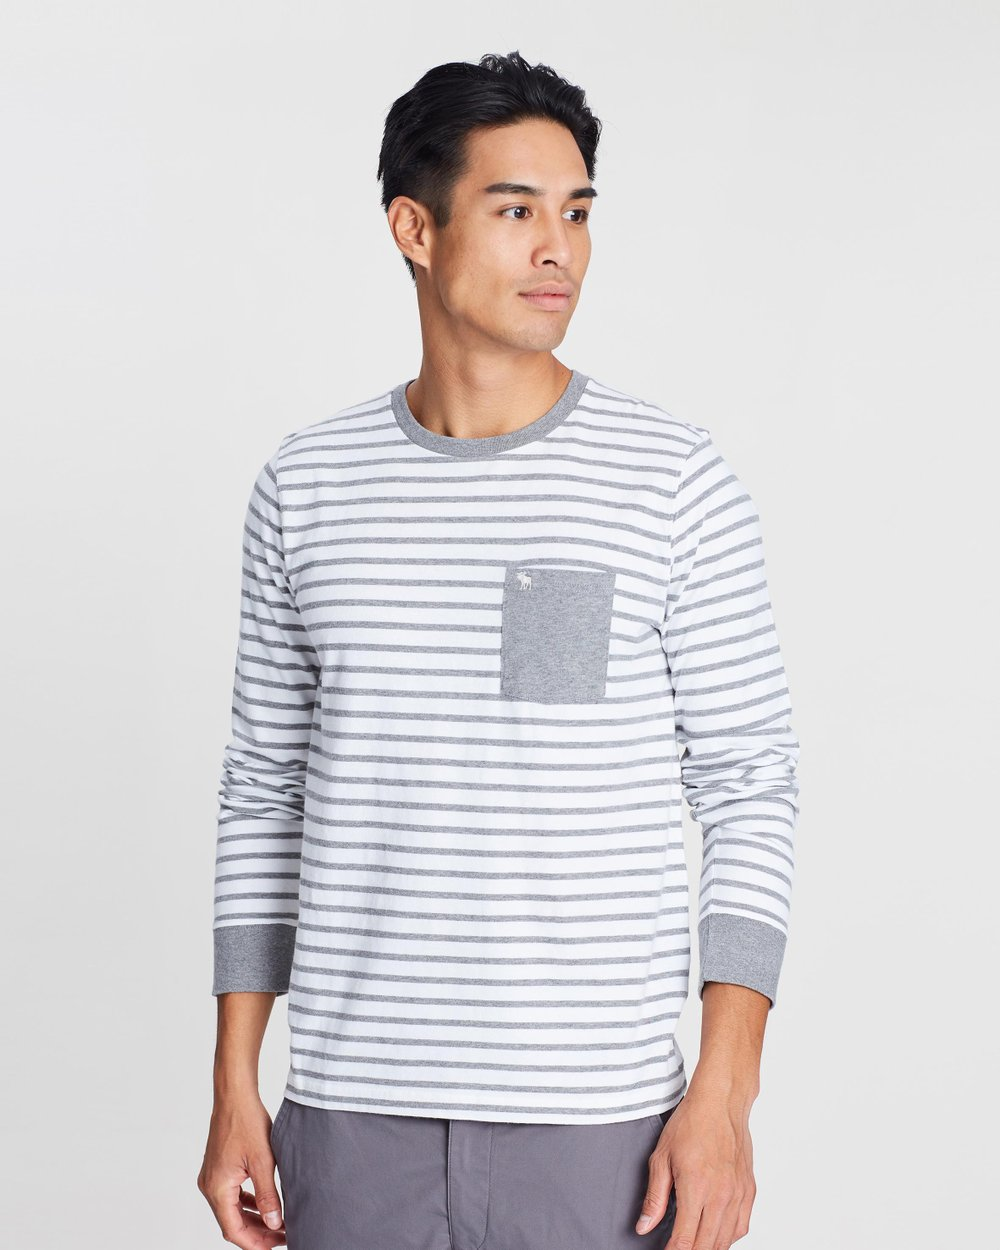 fa797e4d LS Icon Pocket Crew T-Shirt by Abercrombie & Fitch Online | THE ICONIC |  Australia